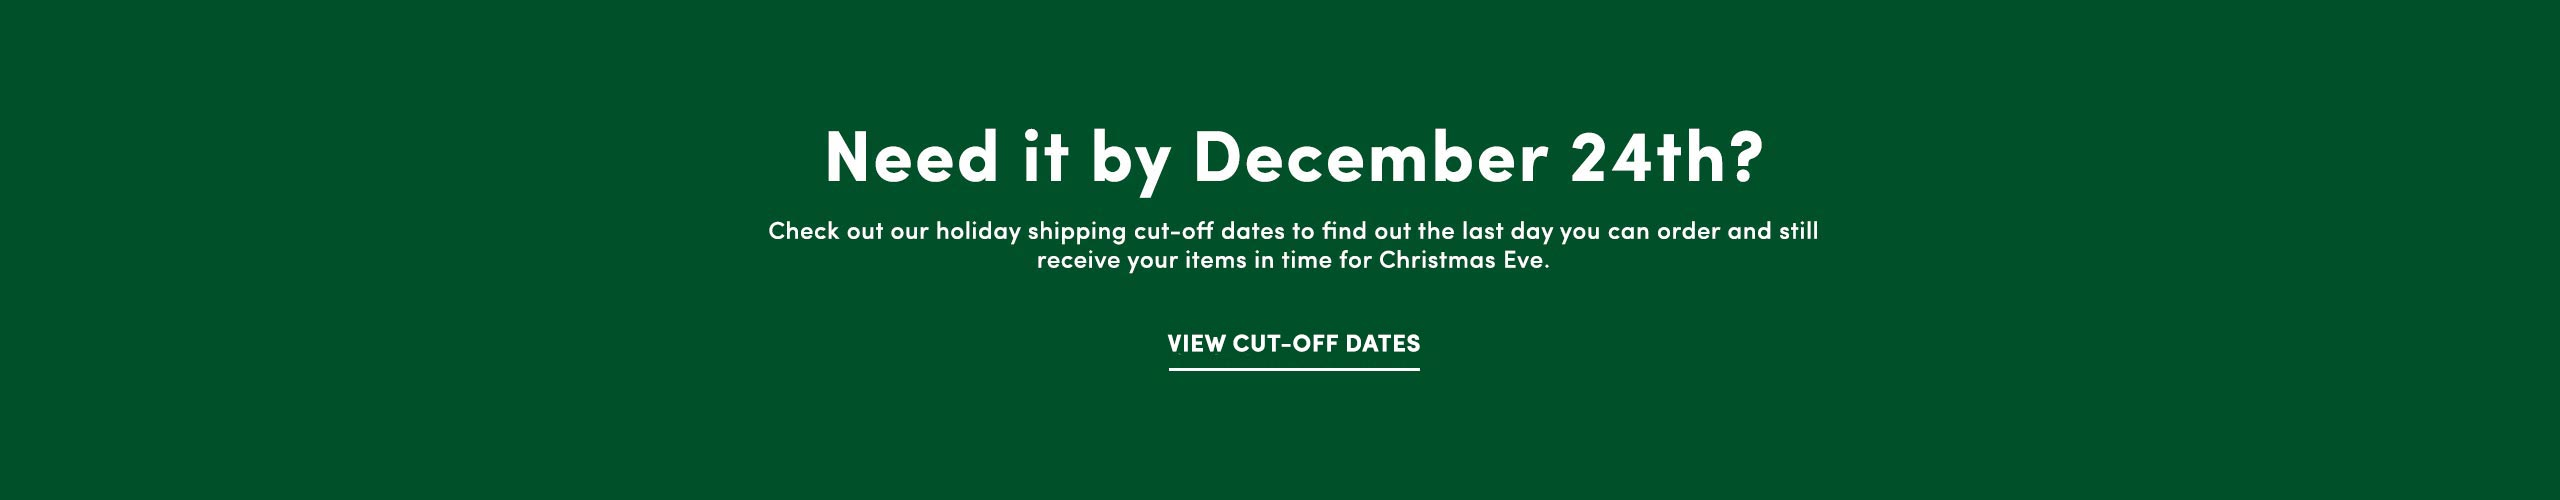 Holiday Cut Off Dates